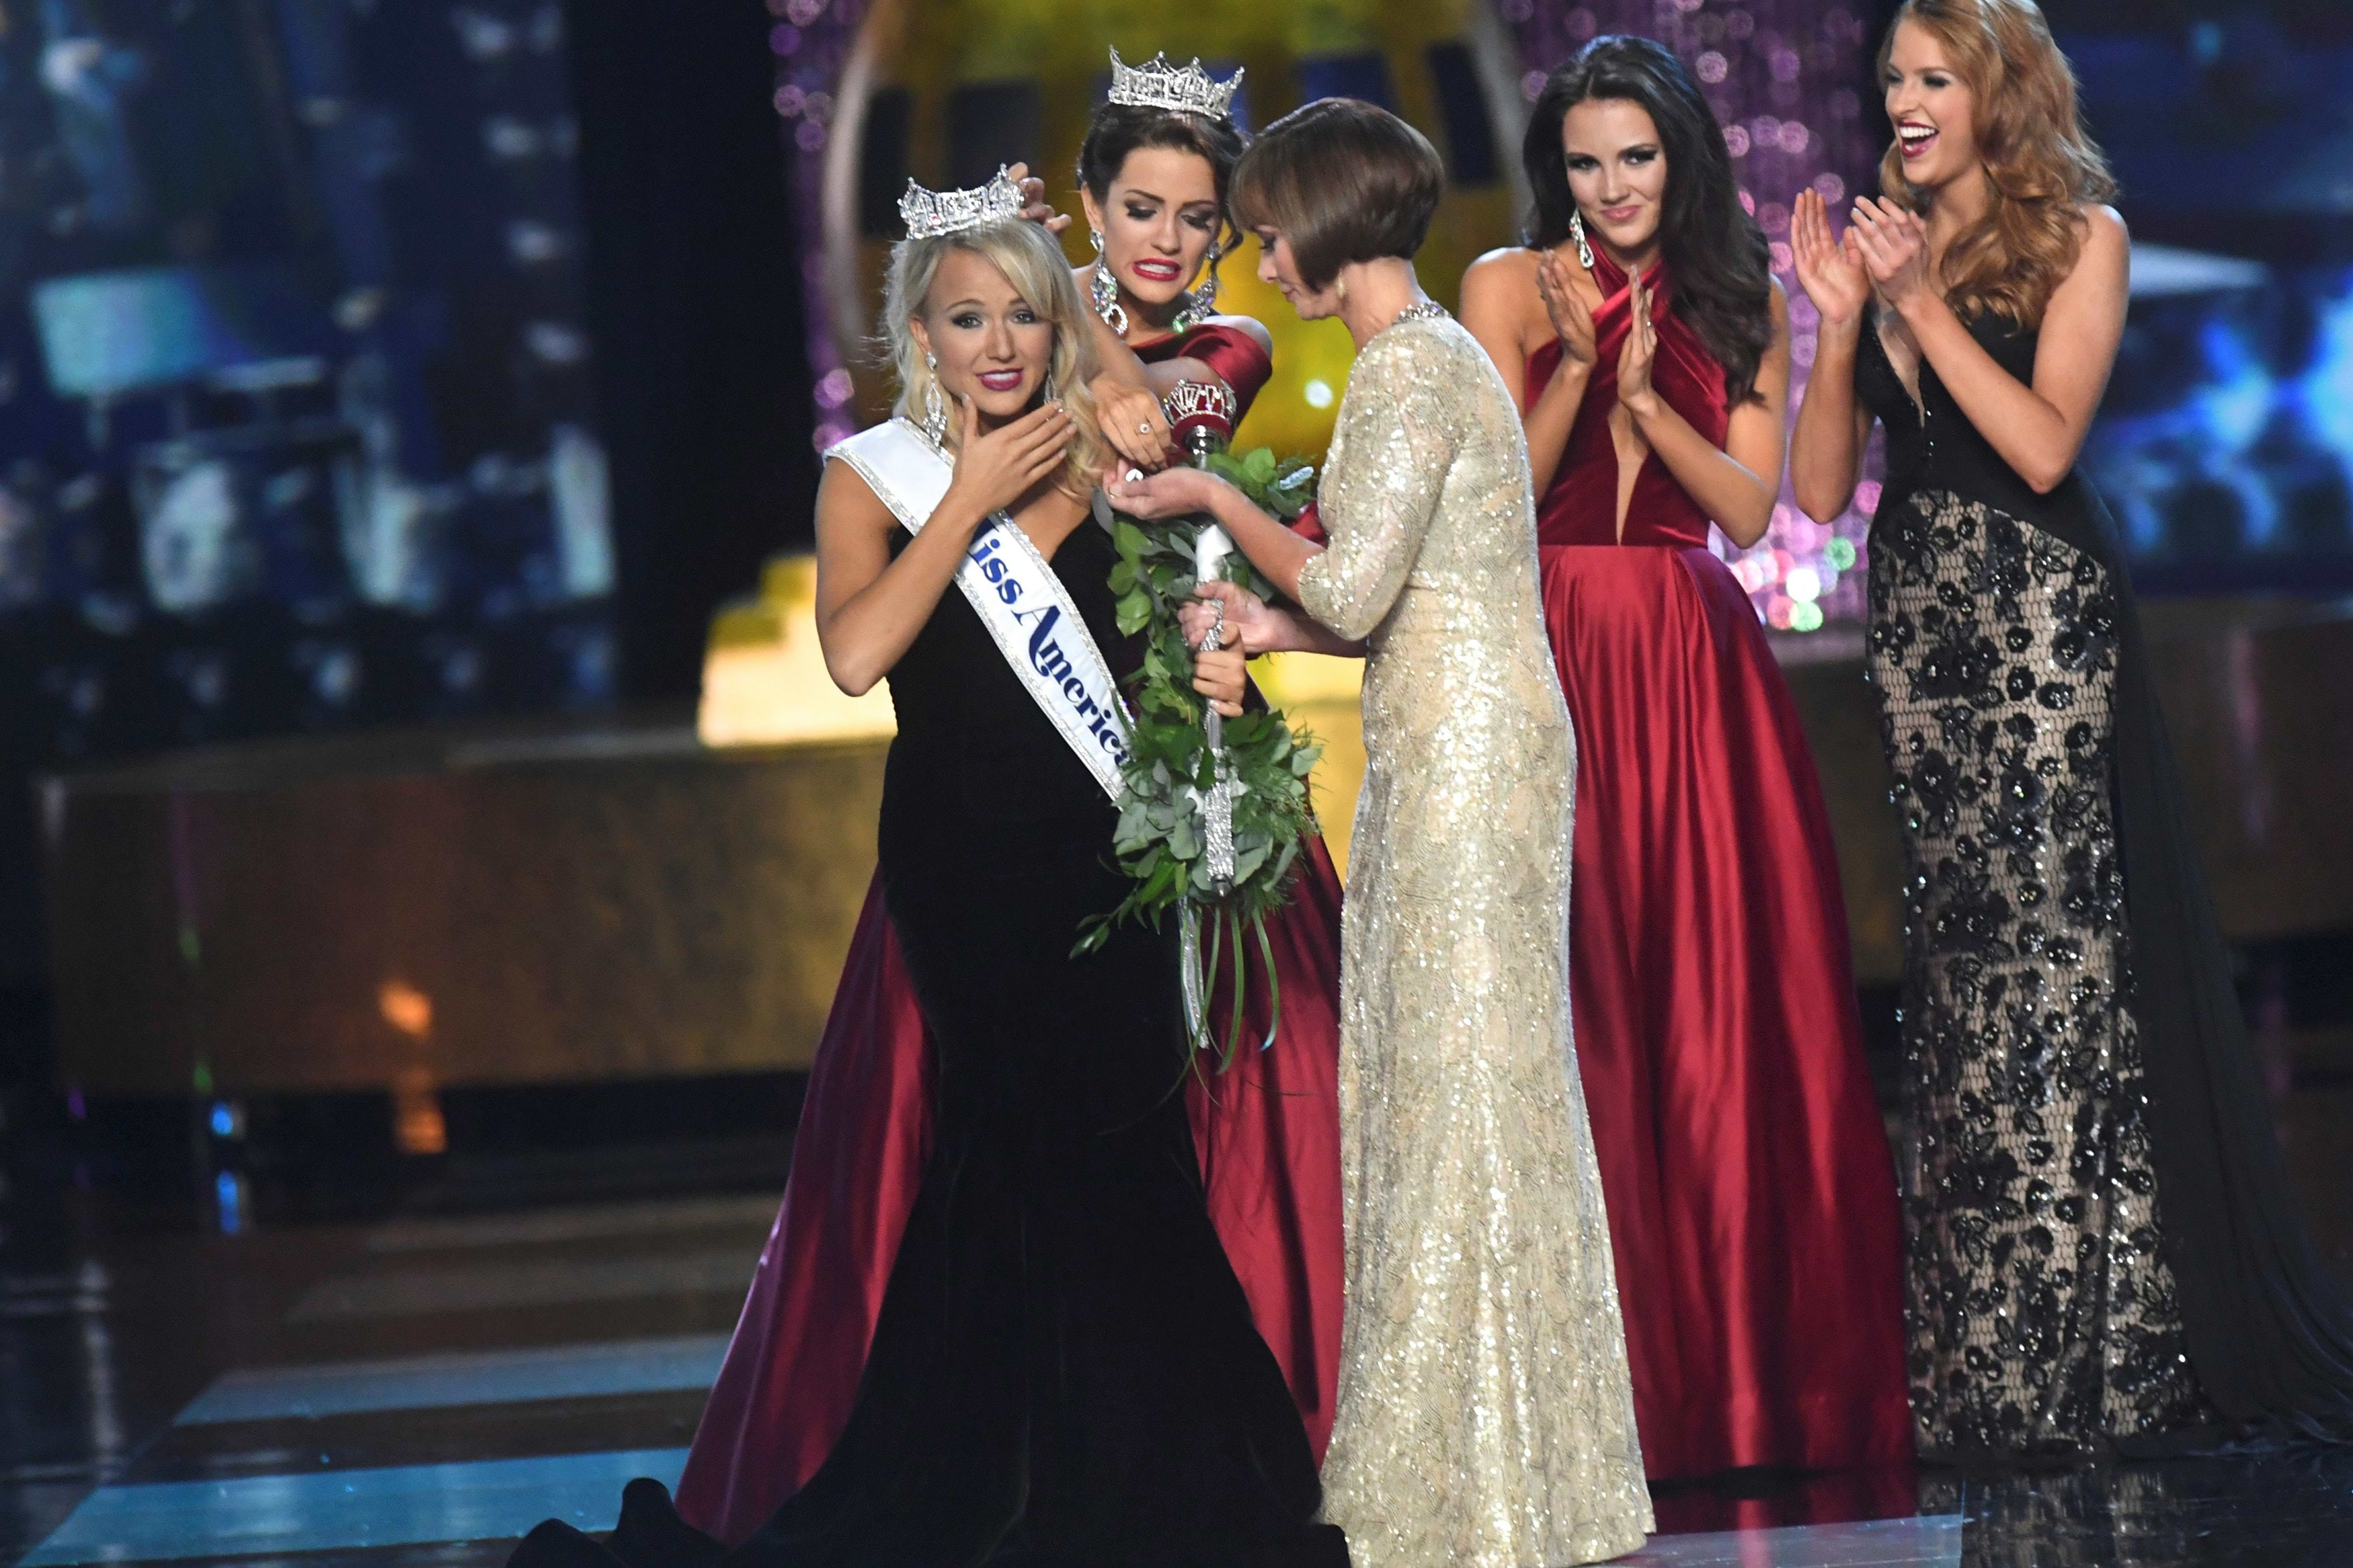 (L) Miss Arkansas Savvy Shields, 21, reacts after winning the 96th Miss America Pageant inside Boardwalk Hall in Atlantic City, New Jersey September 11, 2016.  REUTERS/Mark Makela